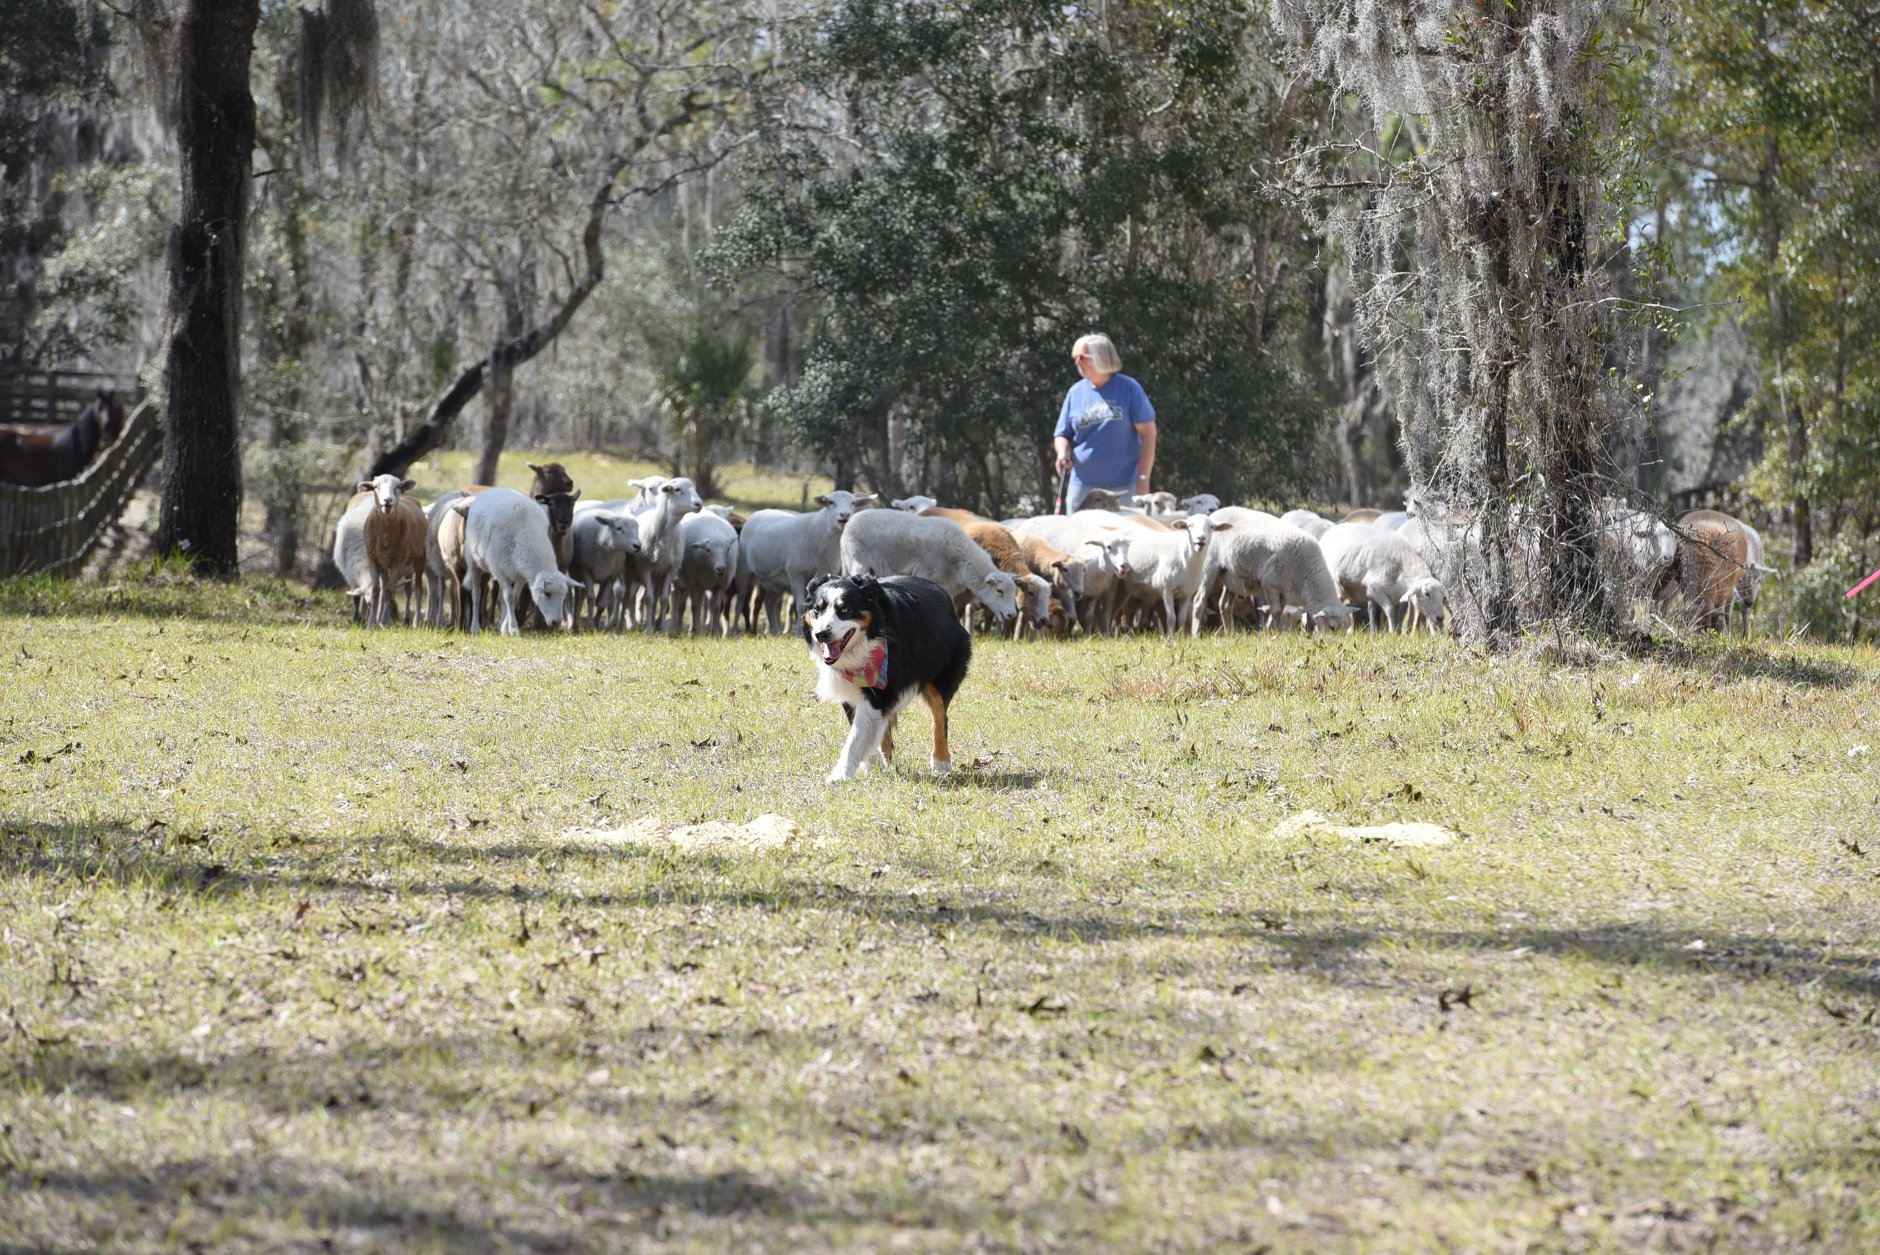 Dog and Sheep.jpg